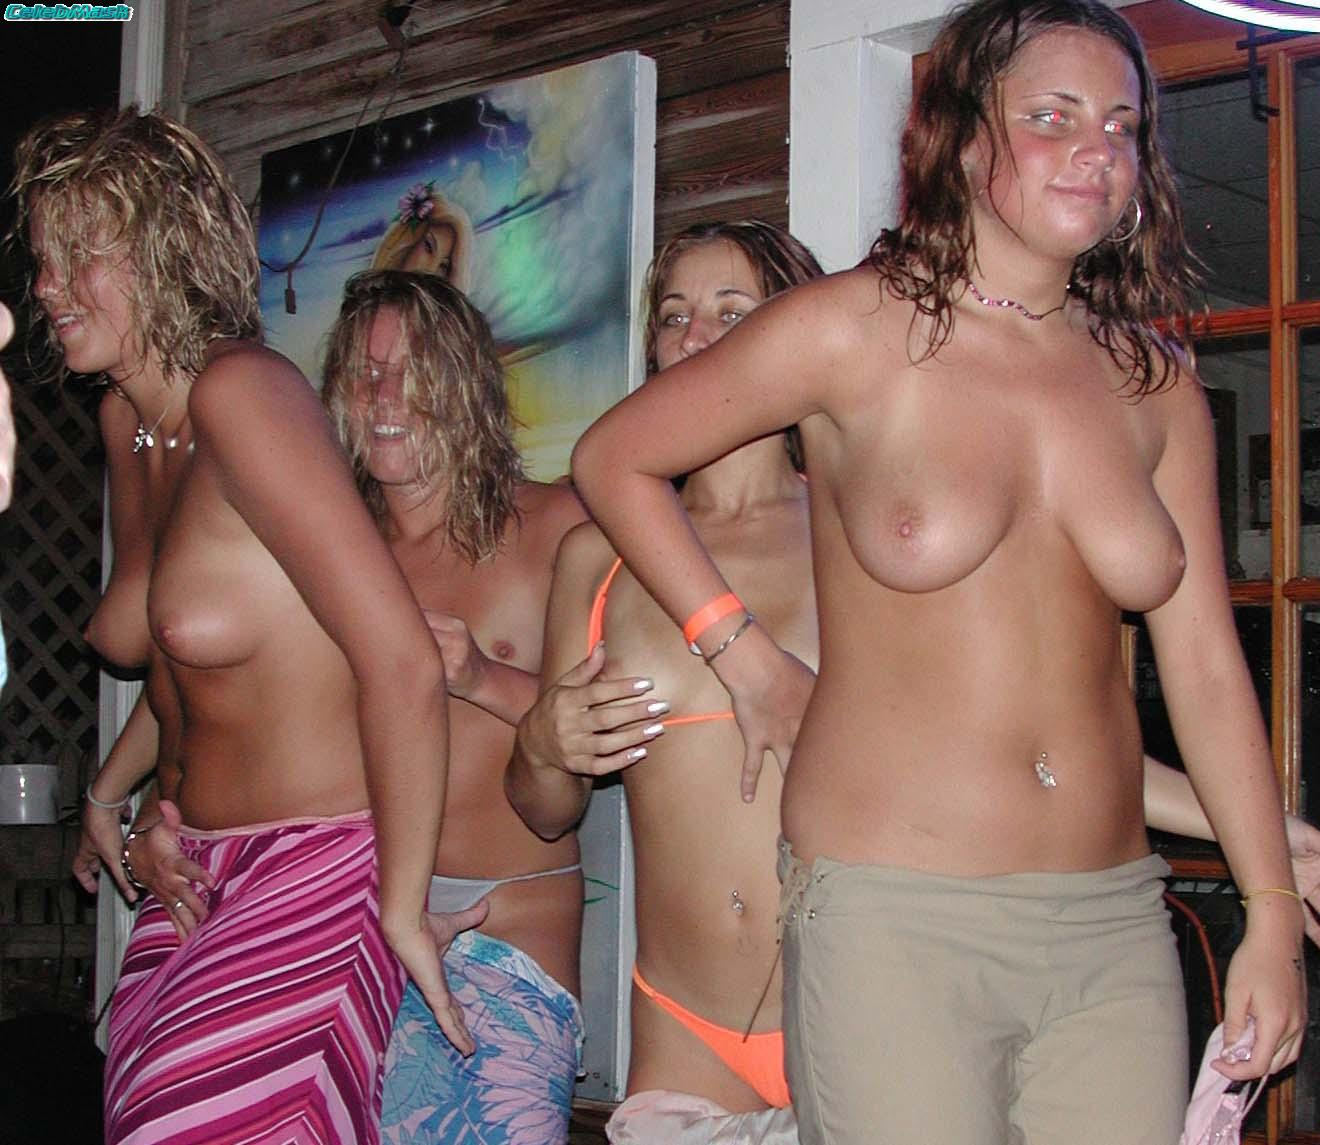 Nude college girl drunk at party charming answer